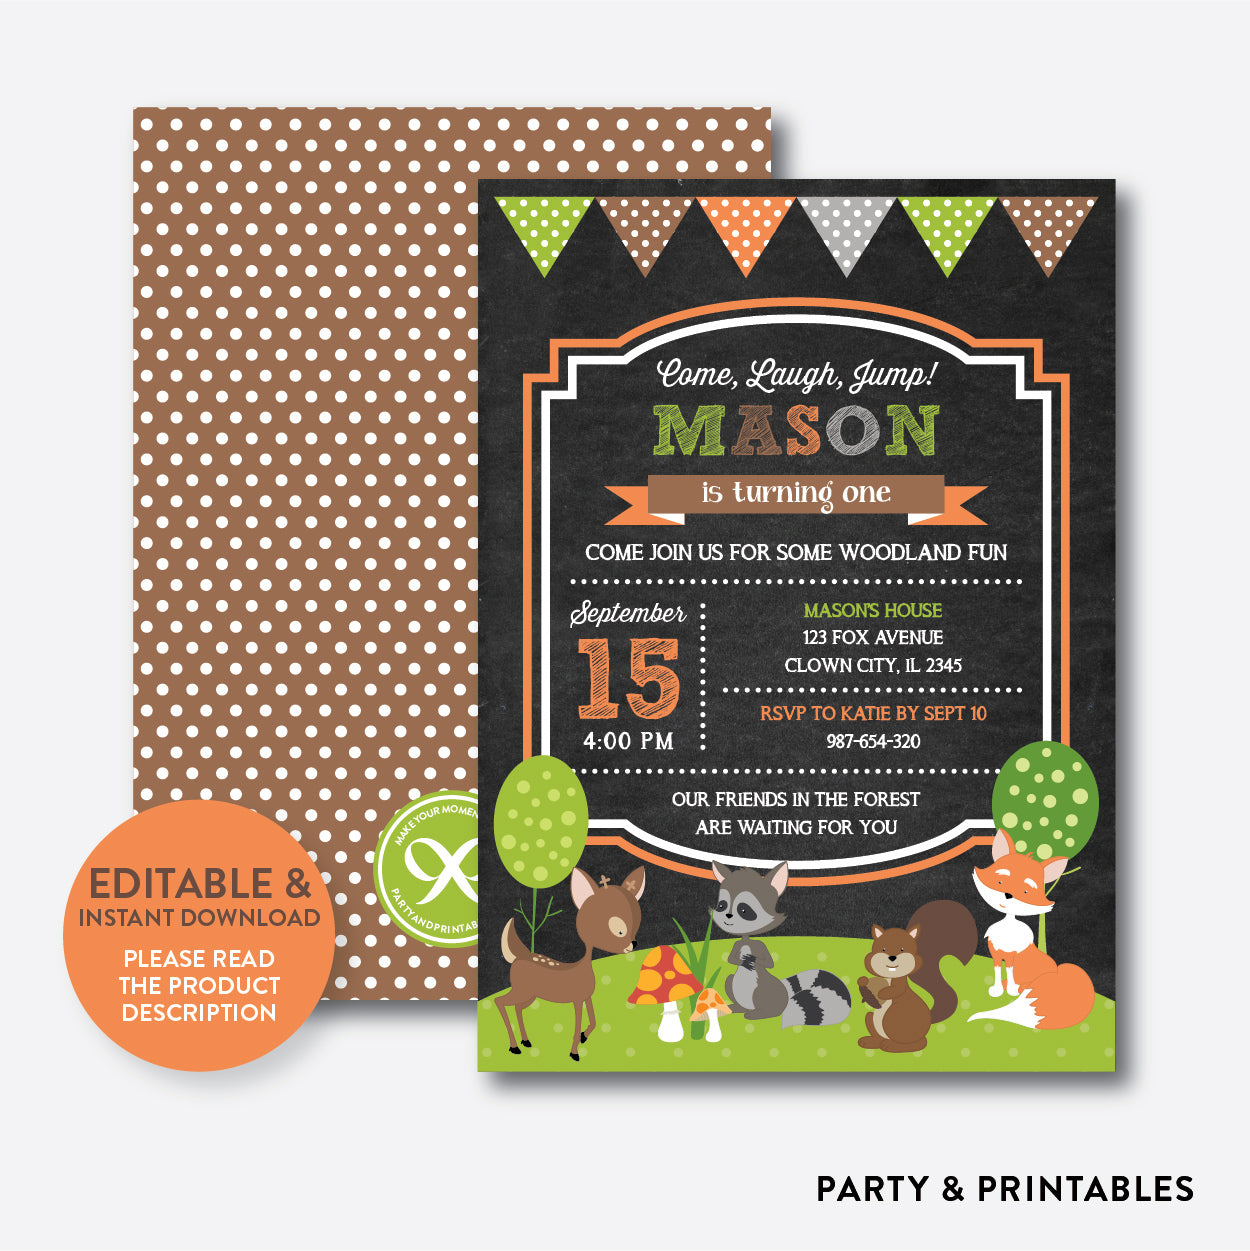 Forest Friends Chalkboard Kids Birthday Invitation / Editable / Instant Download (CKB.27B), invitation - Party and Printables